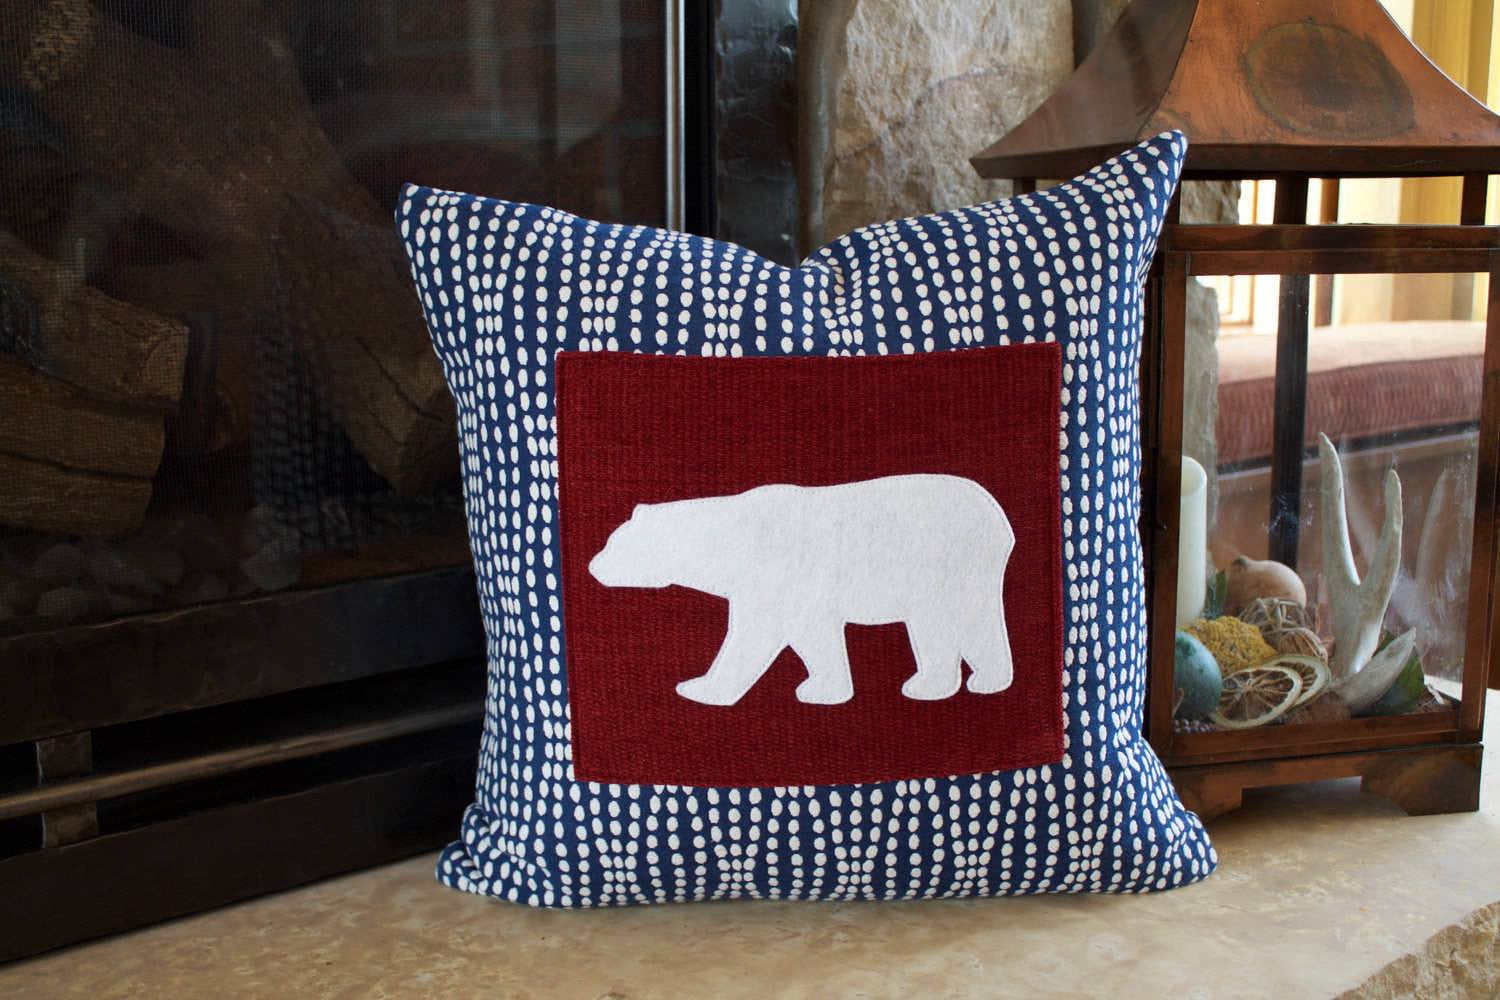 BazaarMPLS, Teal Water Design - Navy and Red Polar Bear Pillow, Teal Water Design, , Shop Minnesota Online, Shop Local MN